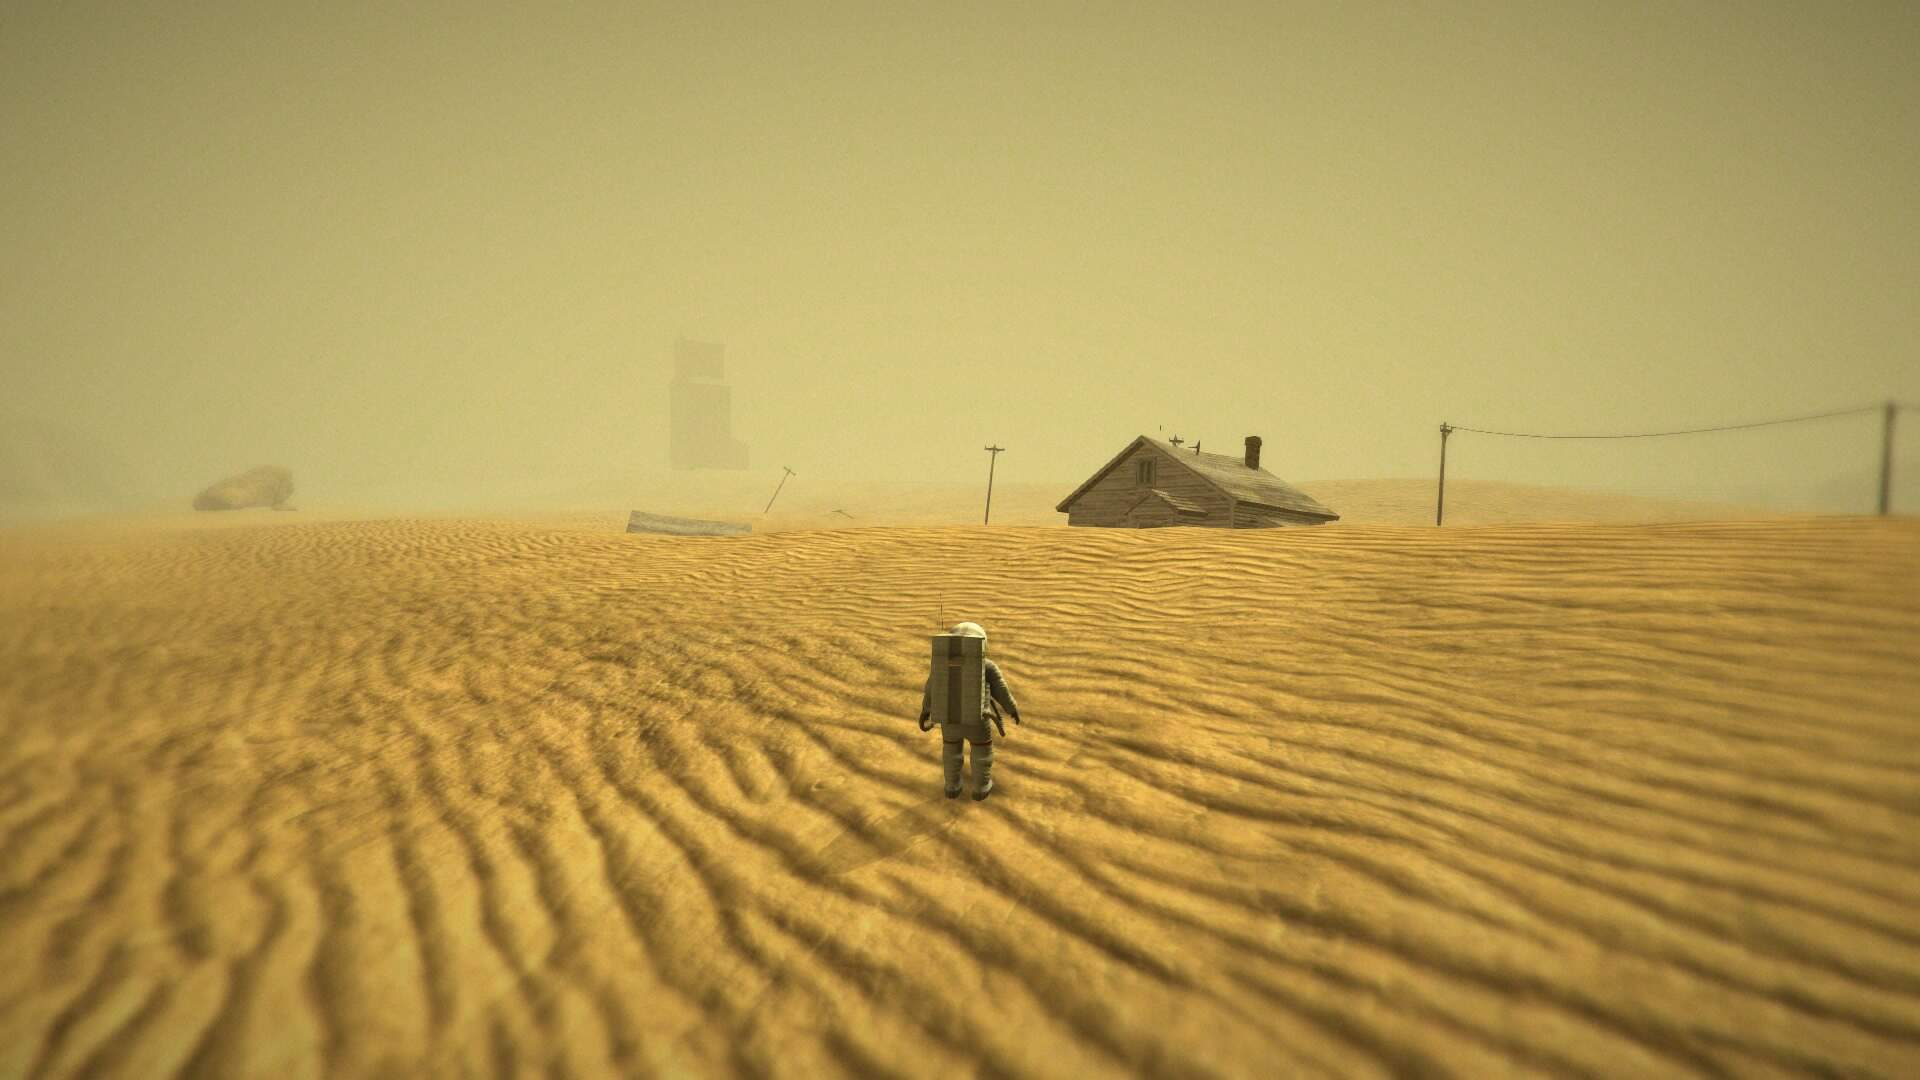 Lifeless Planet PS4 Review: Quirky Sci-Fi Action Adventure